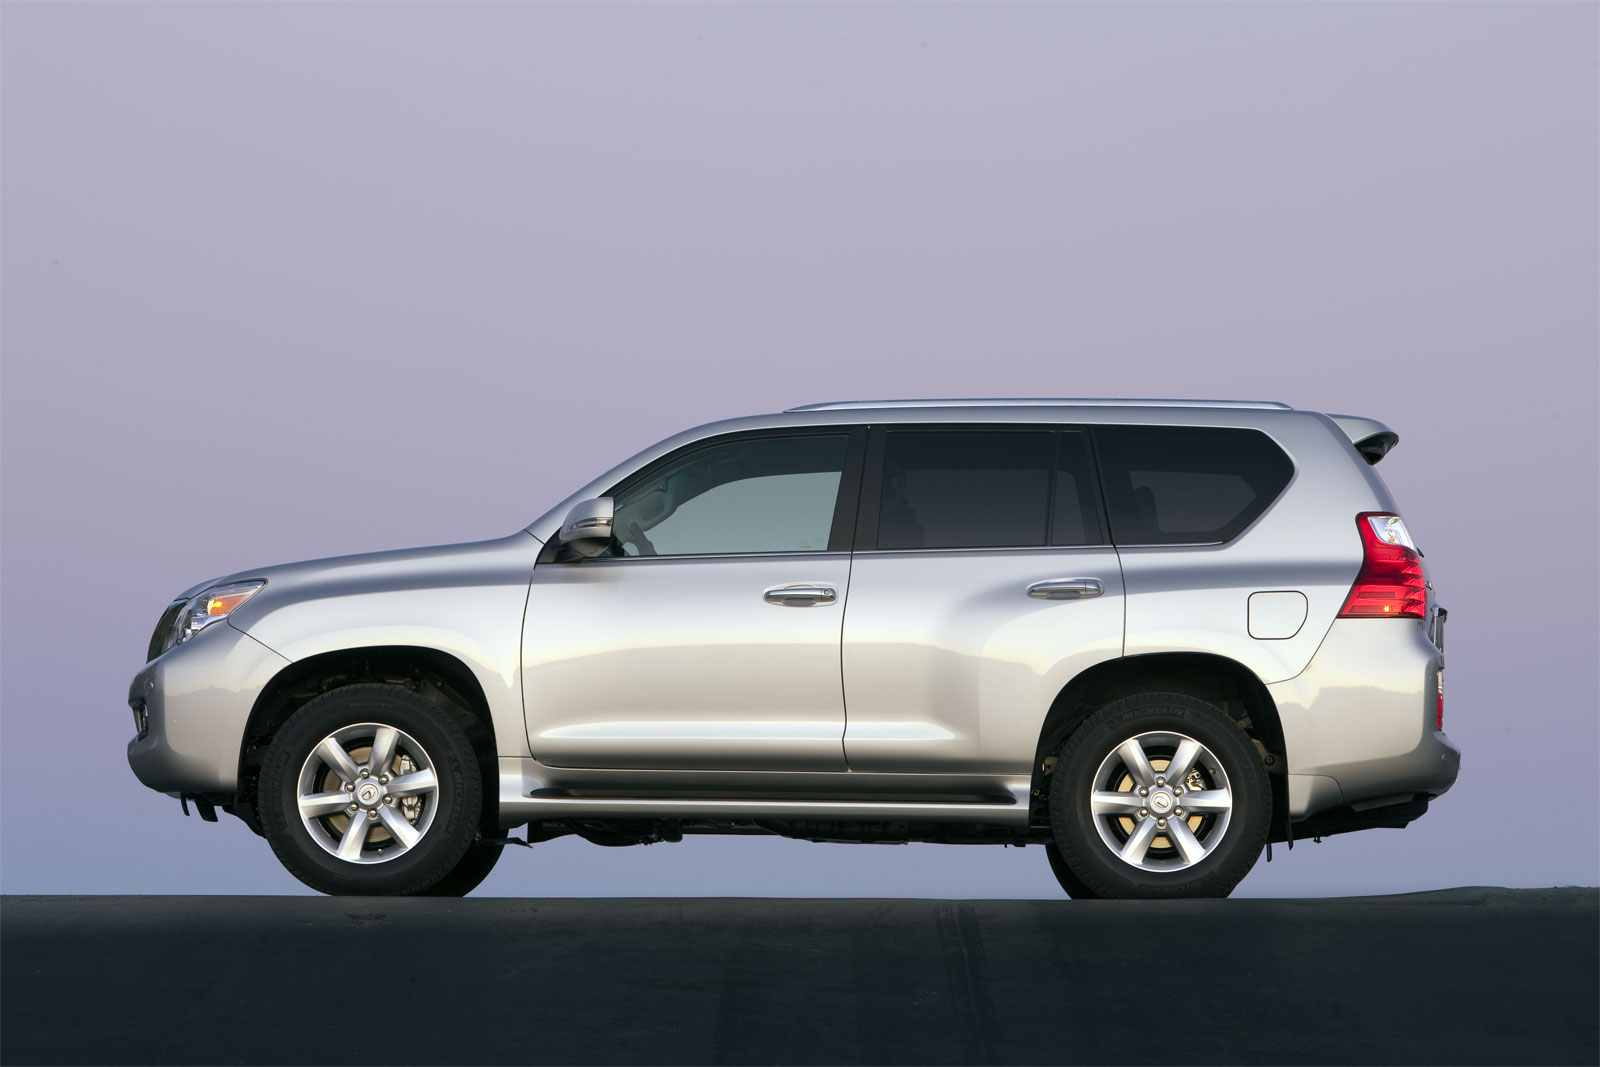 2012 lexus gx 460 photos informations articles. Black Bedroom Furniture Sets. Home Design Ideas